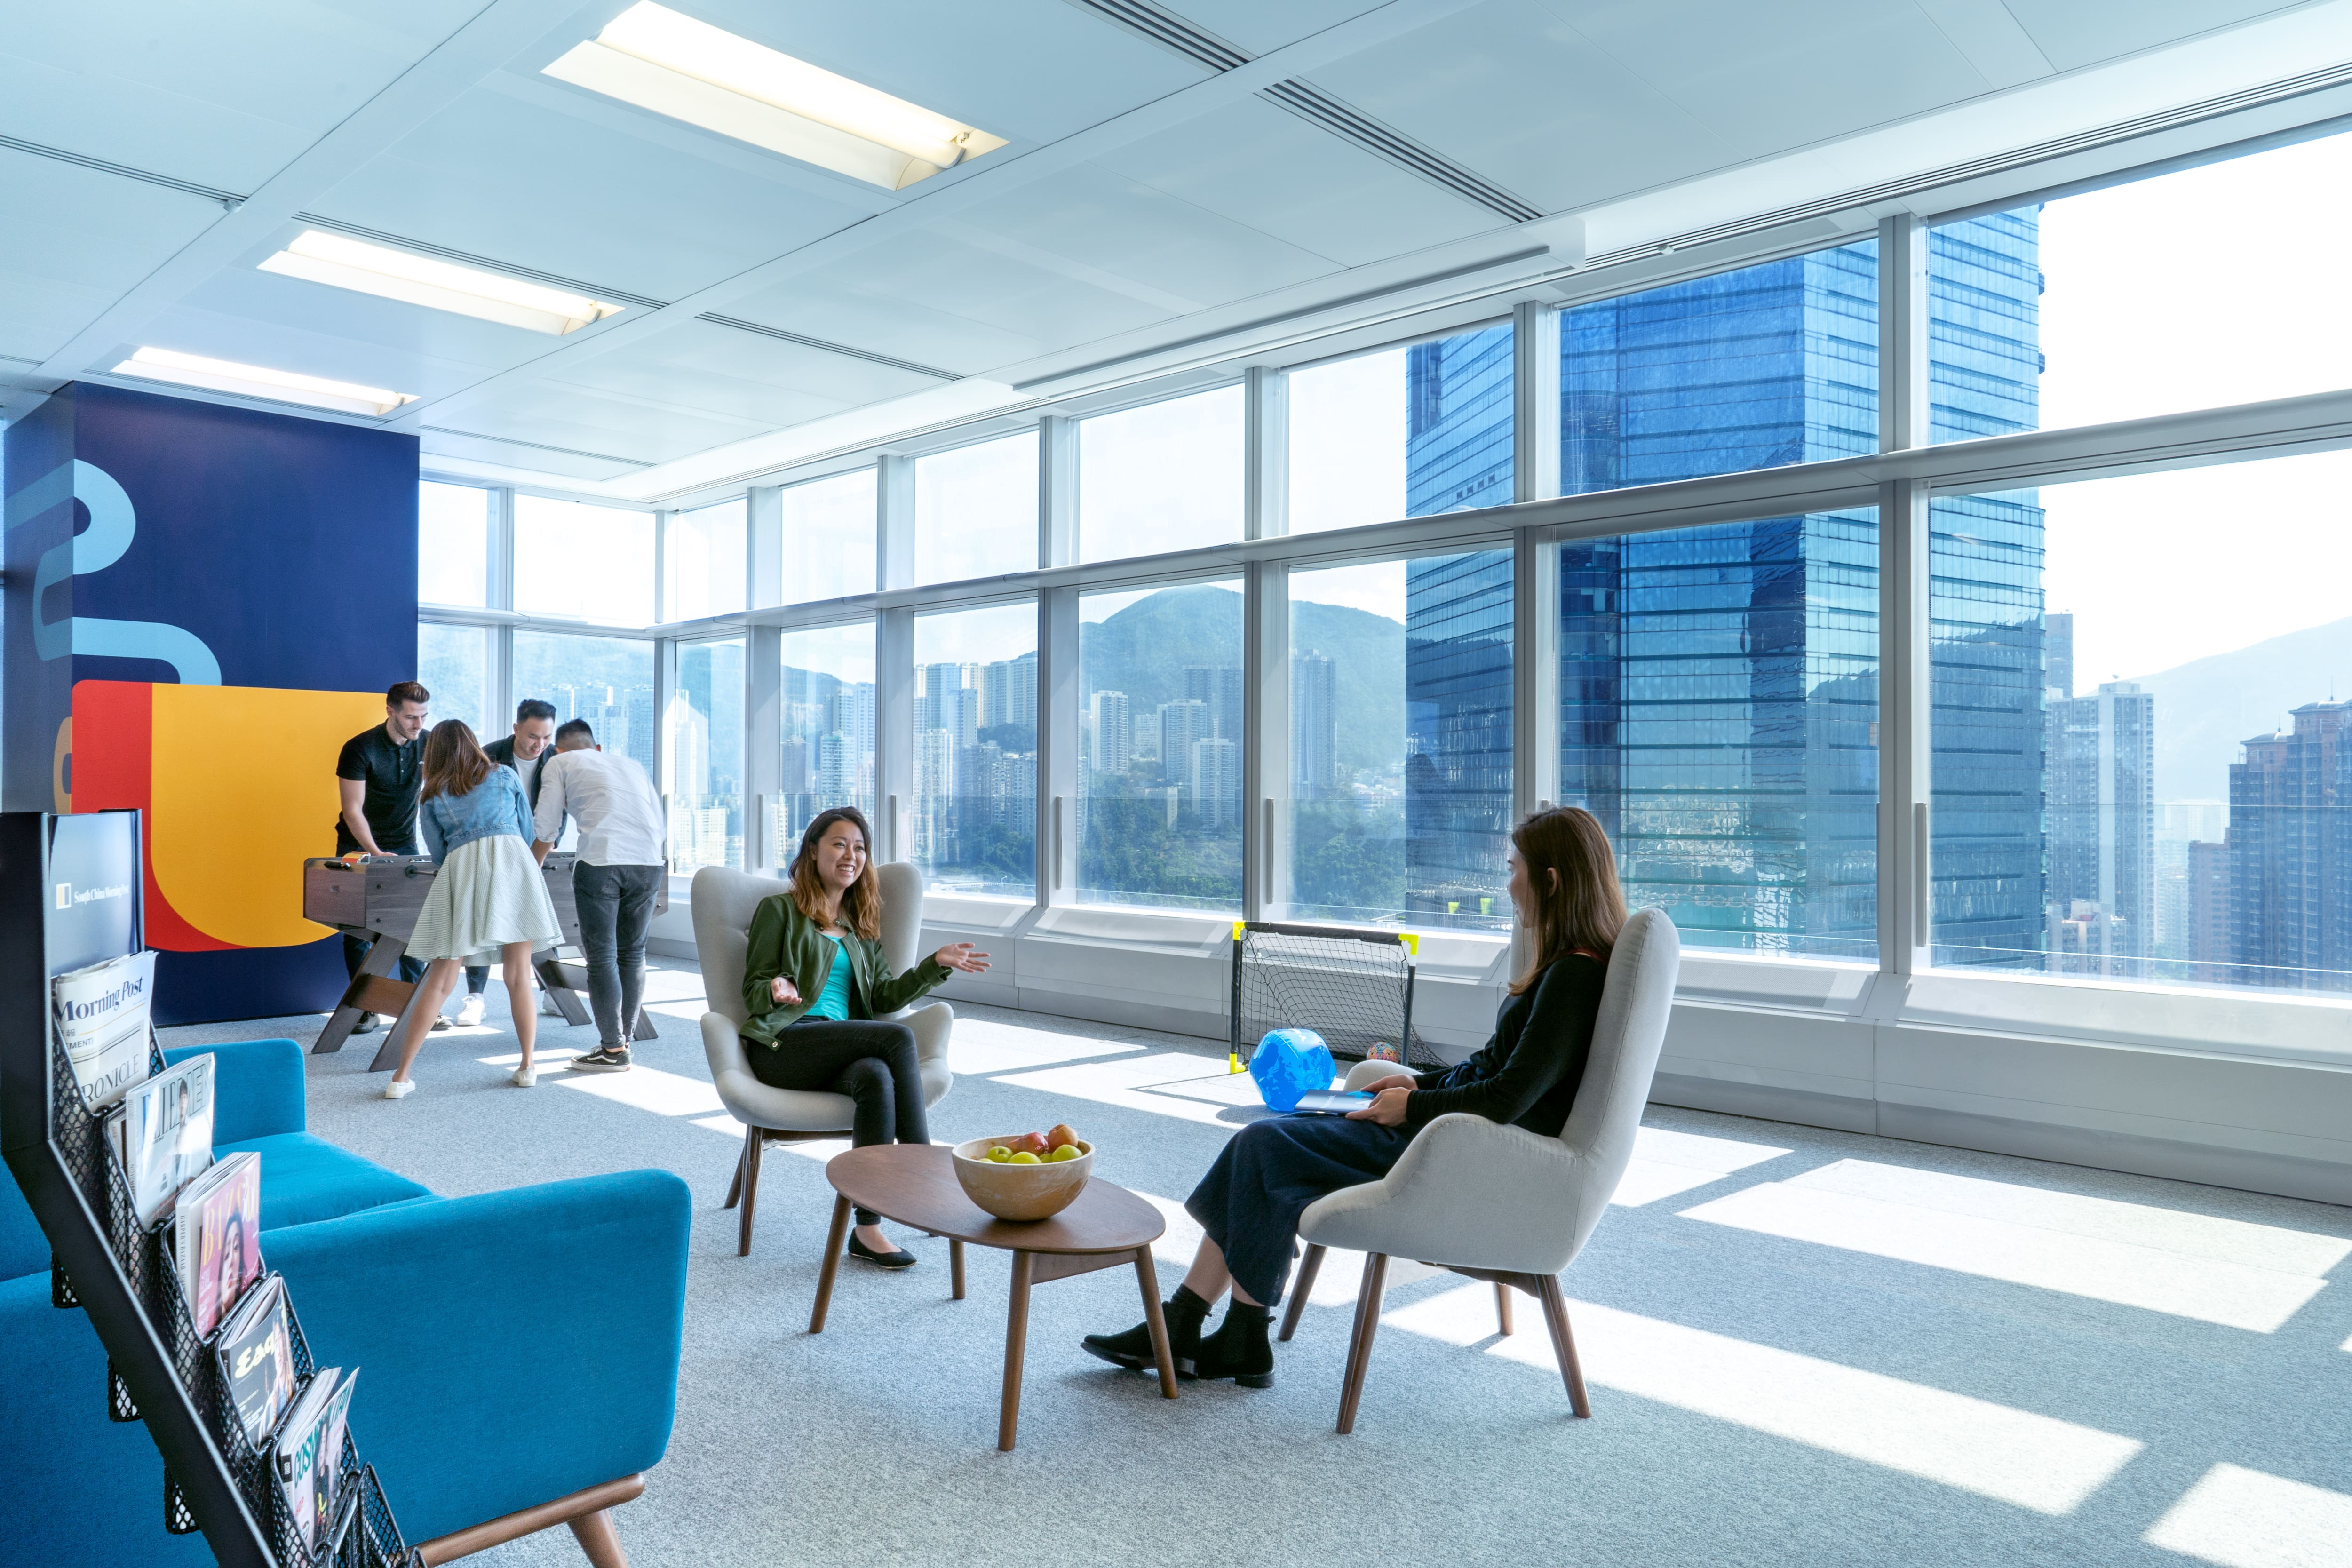 The post pandemic workplace design encourages collaboration and social interaction